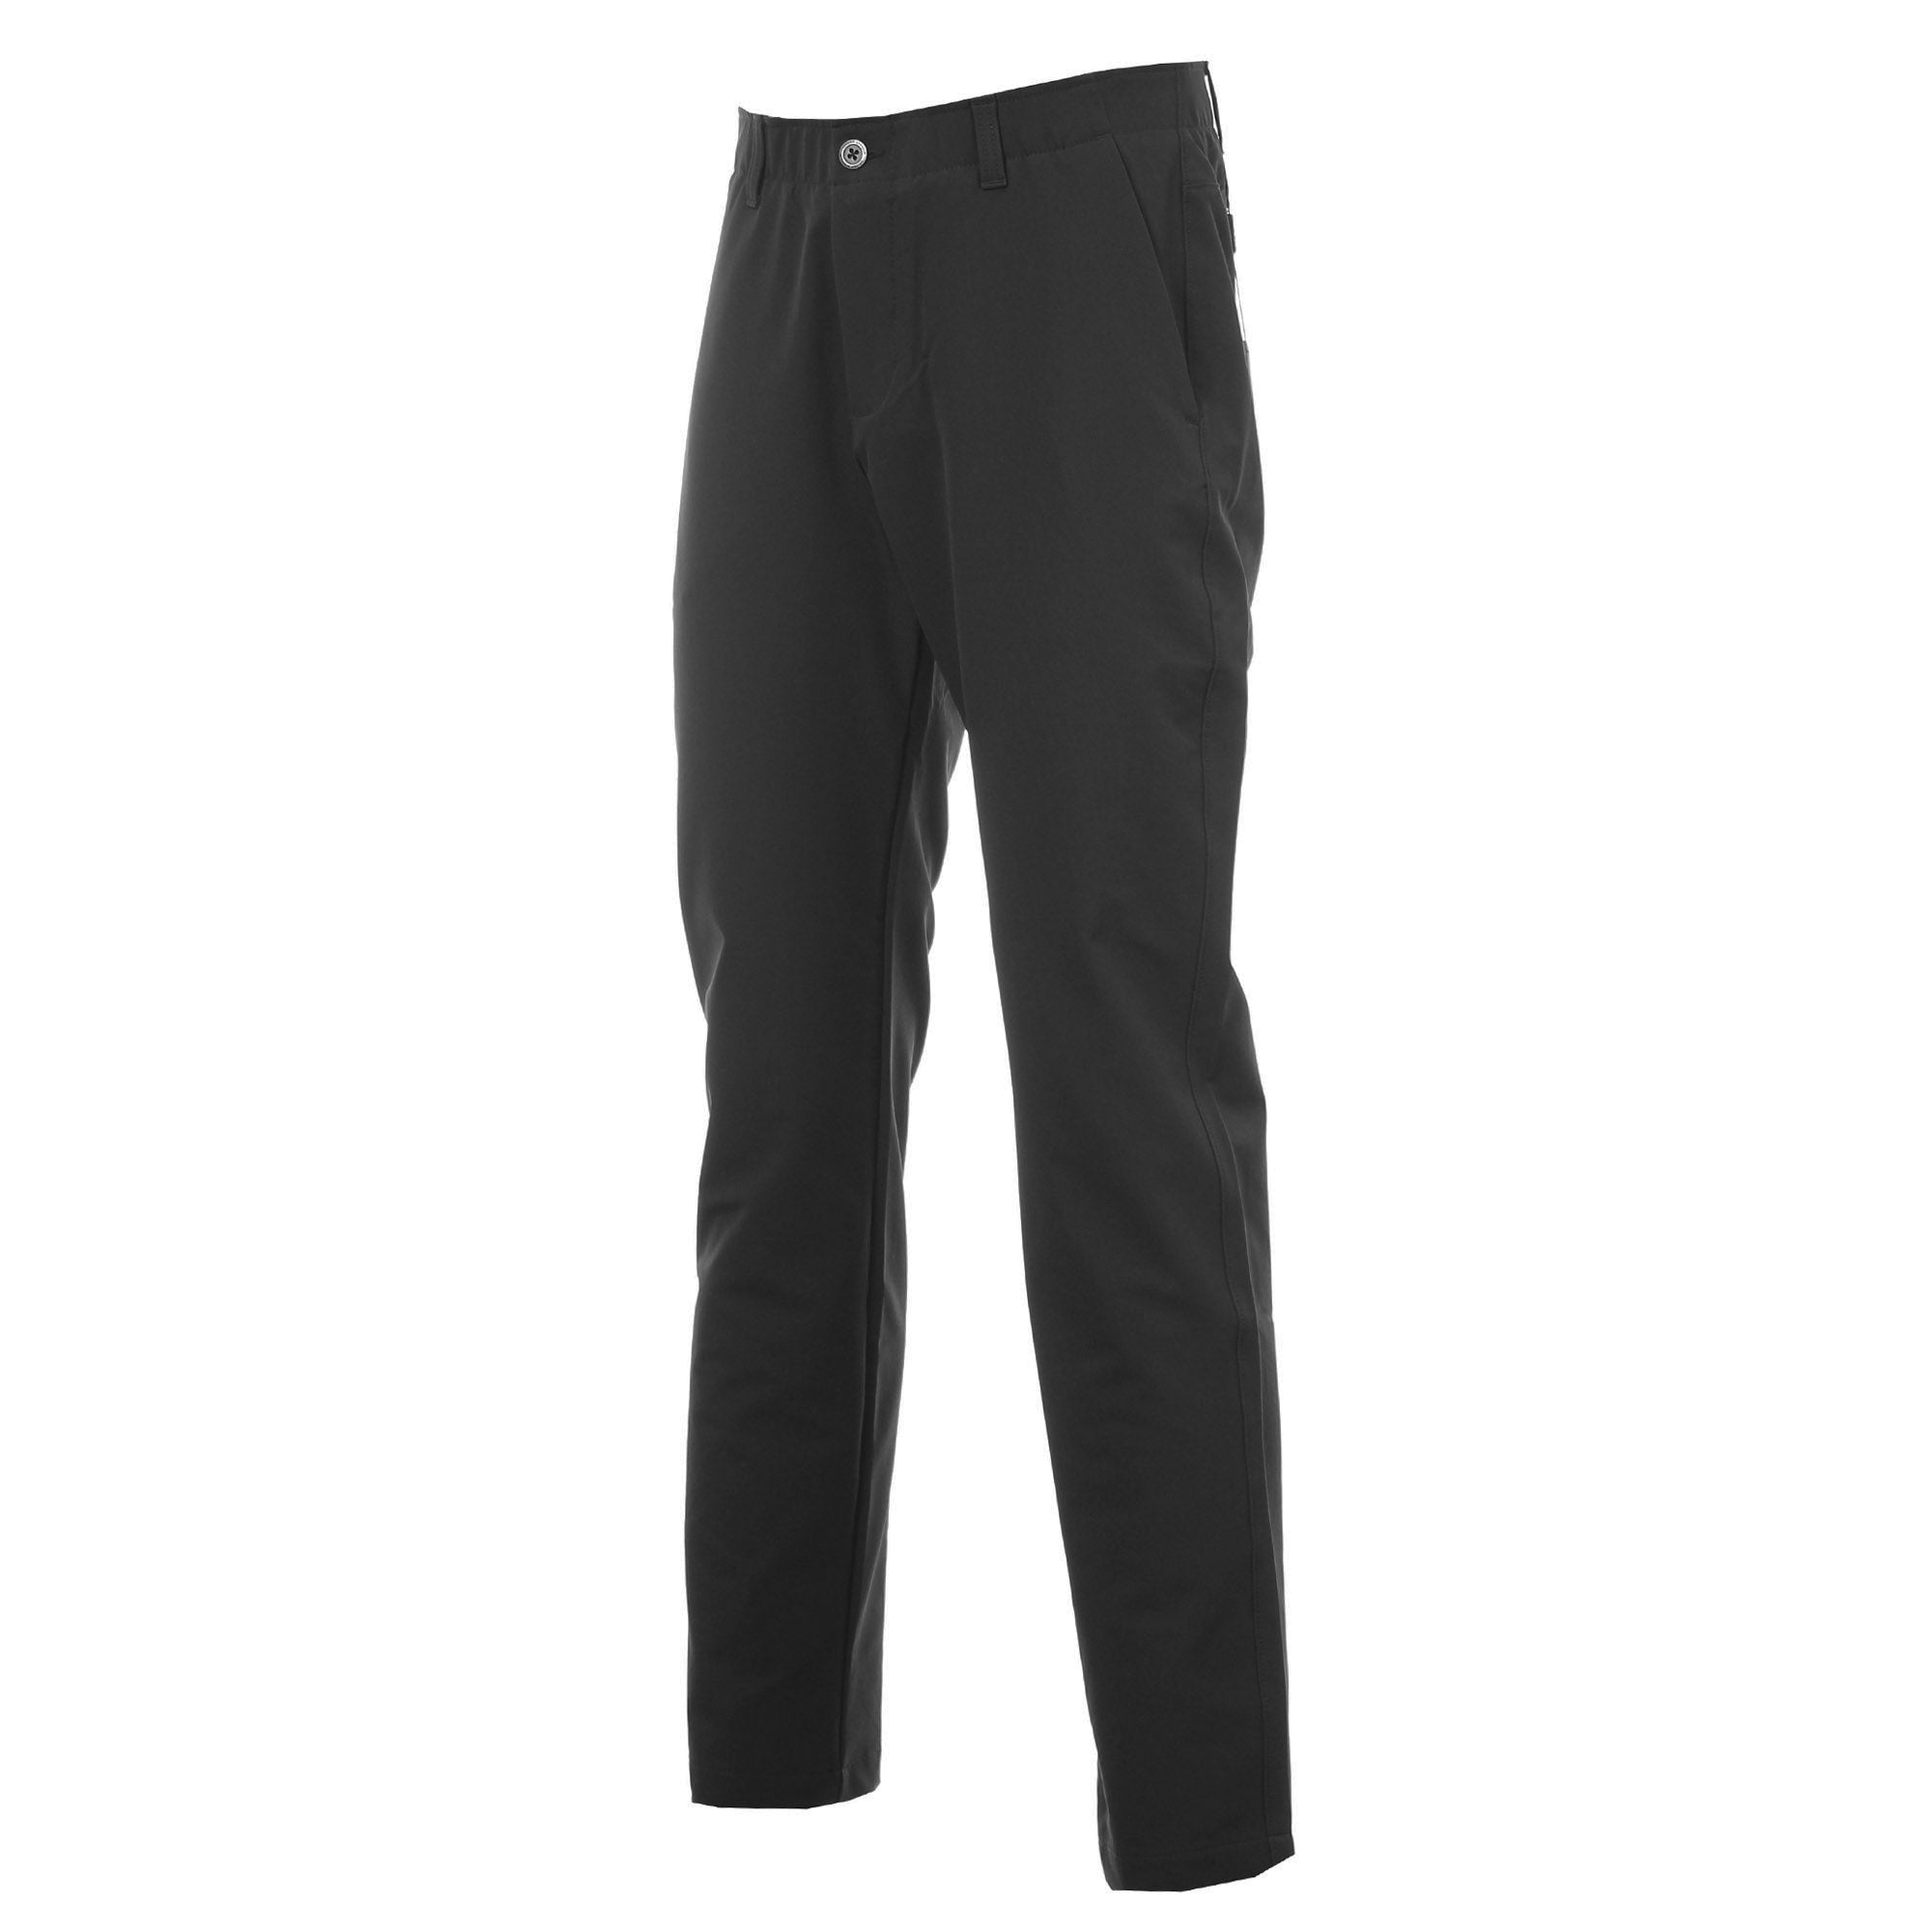 Under Armour Golf CGI Showdown Tapered Pants